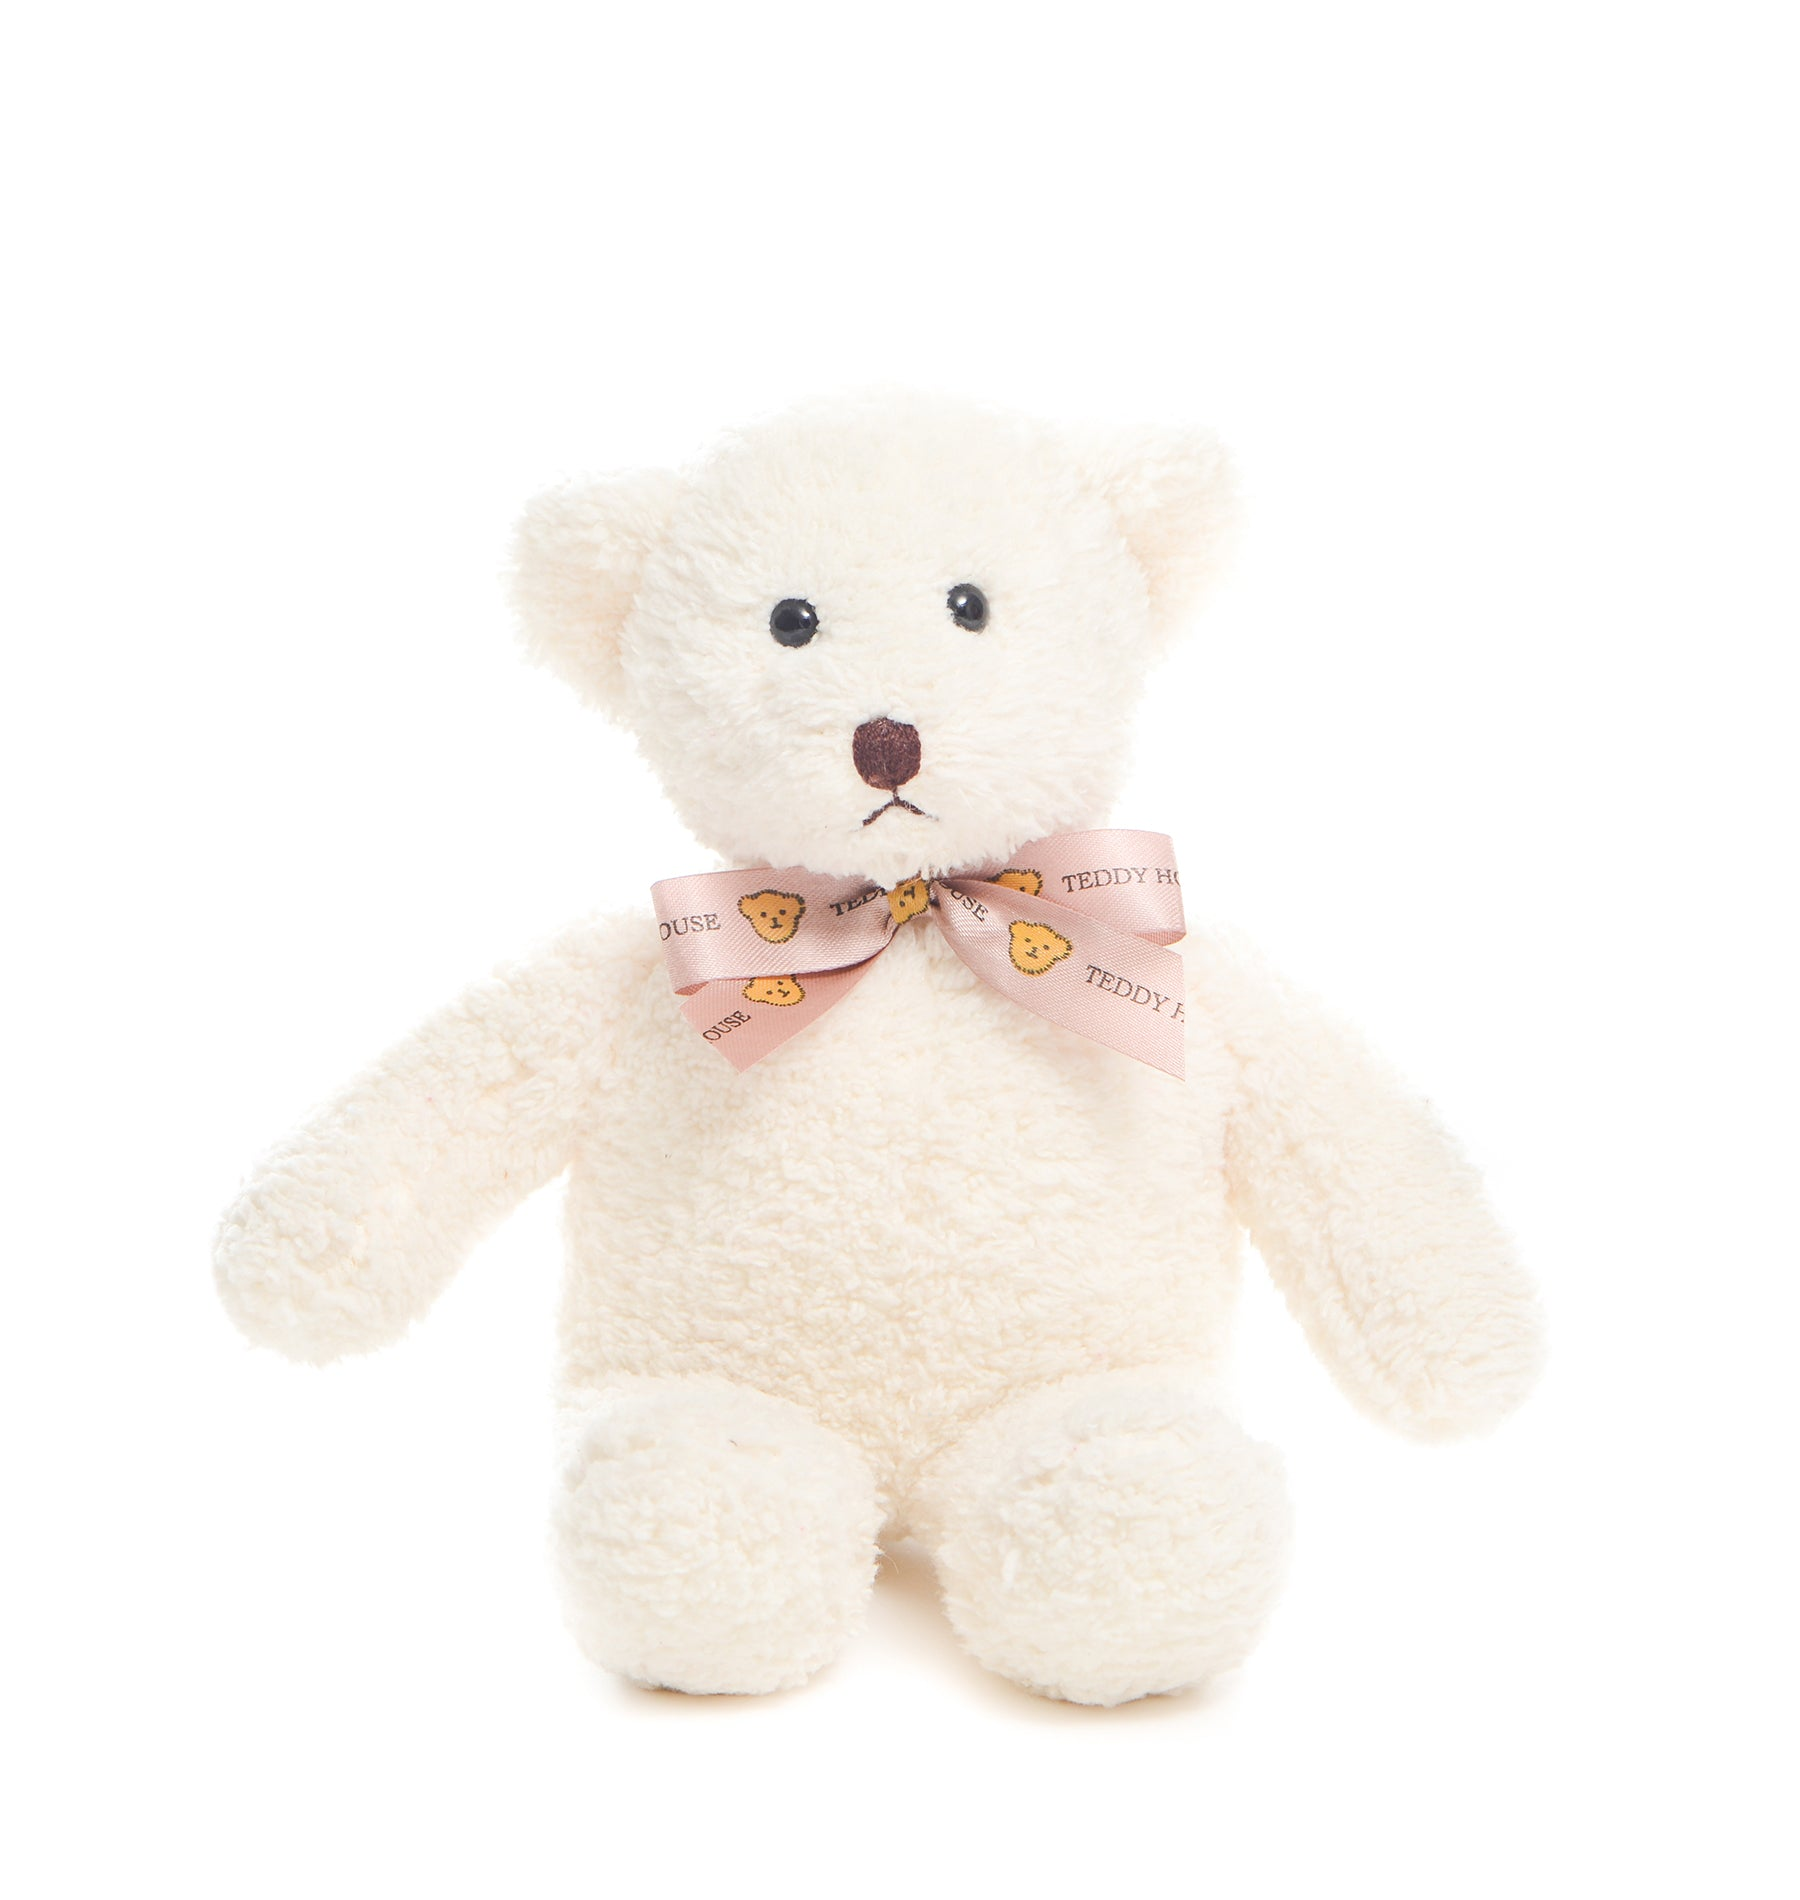 TEDDY HOUSE BONEKA TEDDY BEAR ANDY BEAR 8 INCHI